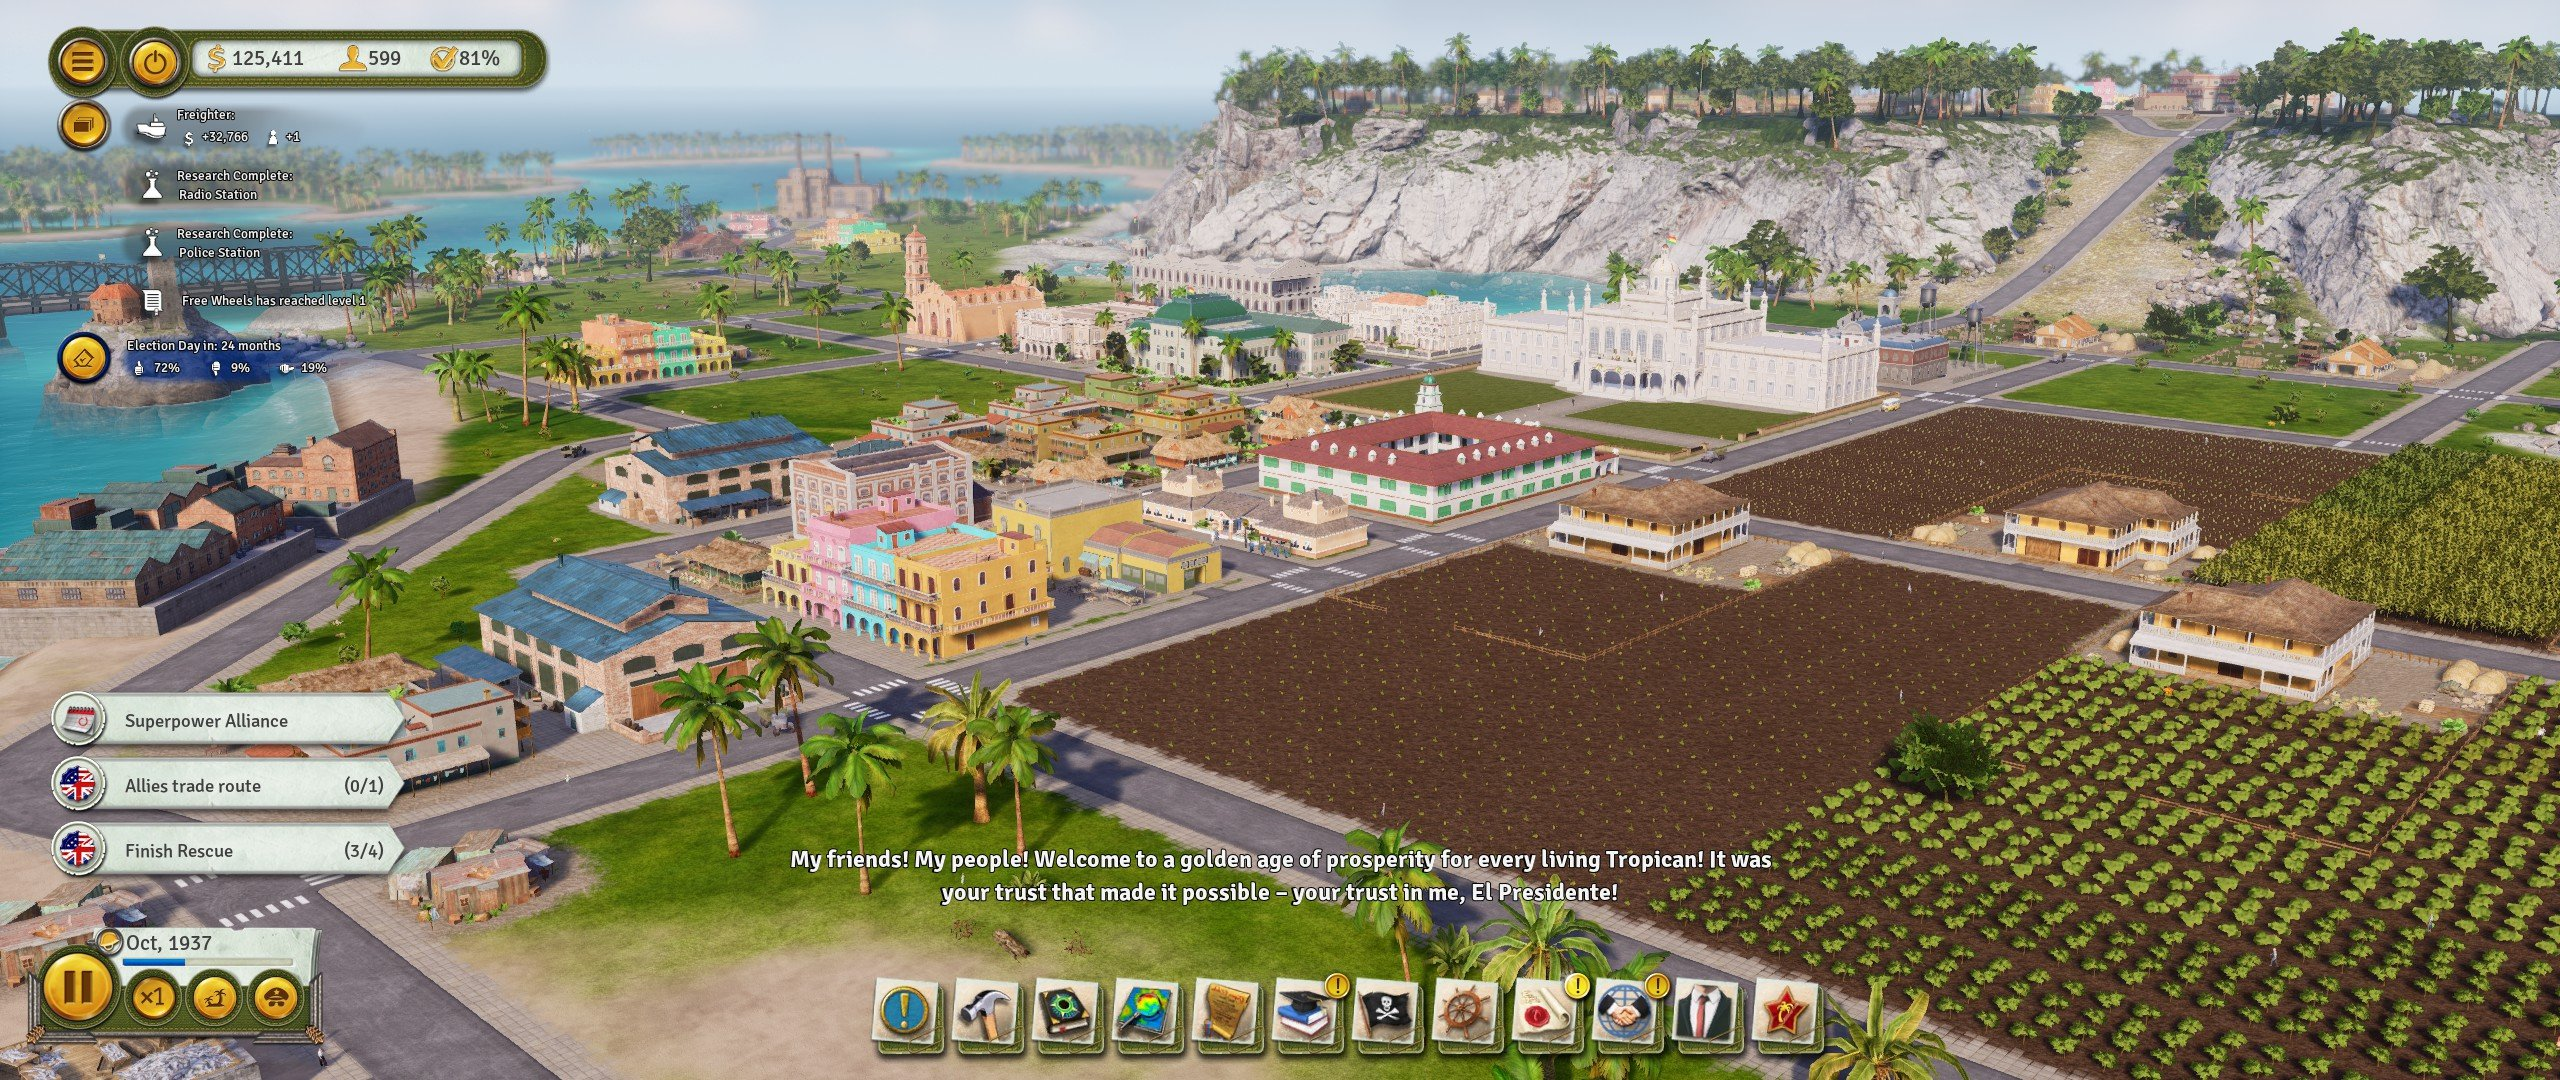 Tropico 6 review Shacknews screenshot 01